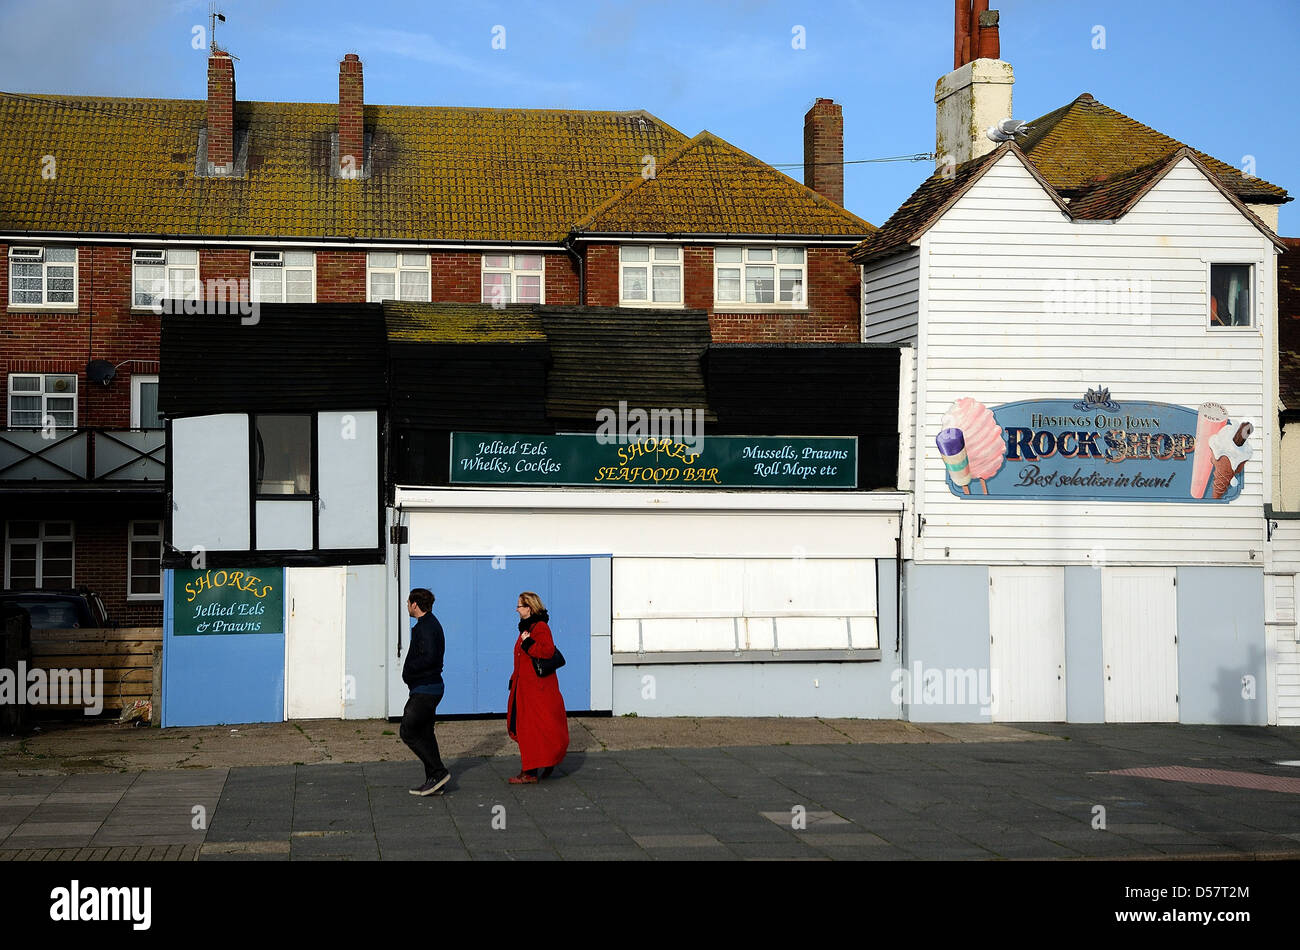 Closed seaside shop fronts in Hastings old town Sussex - Stock Image